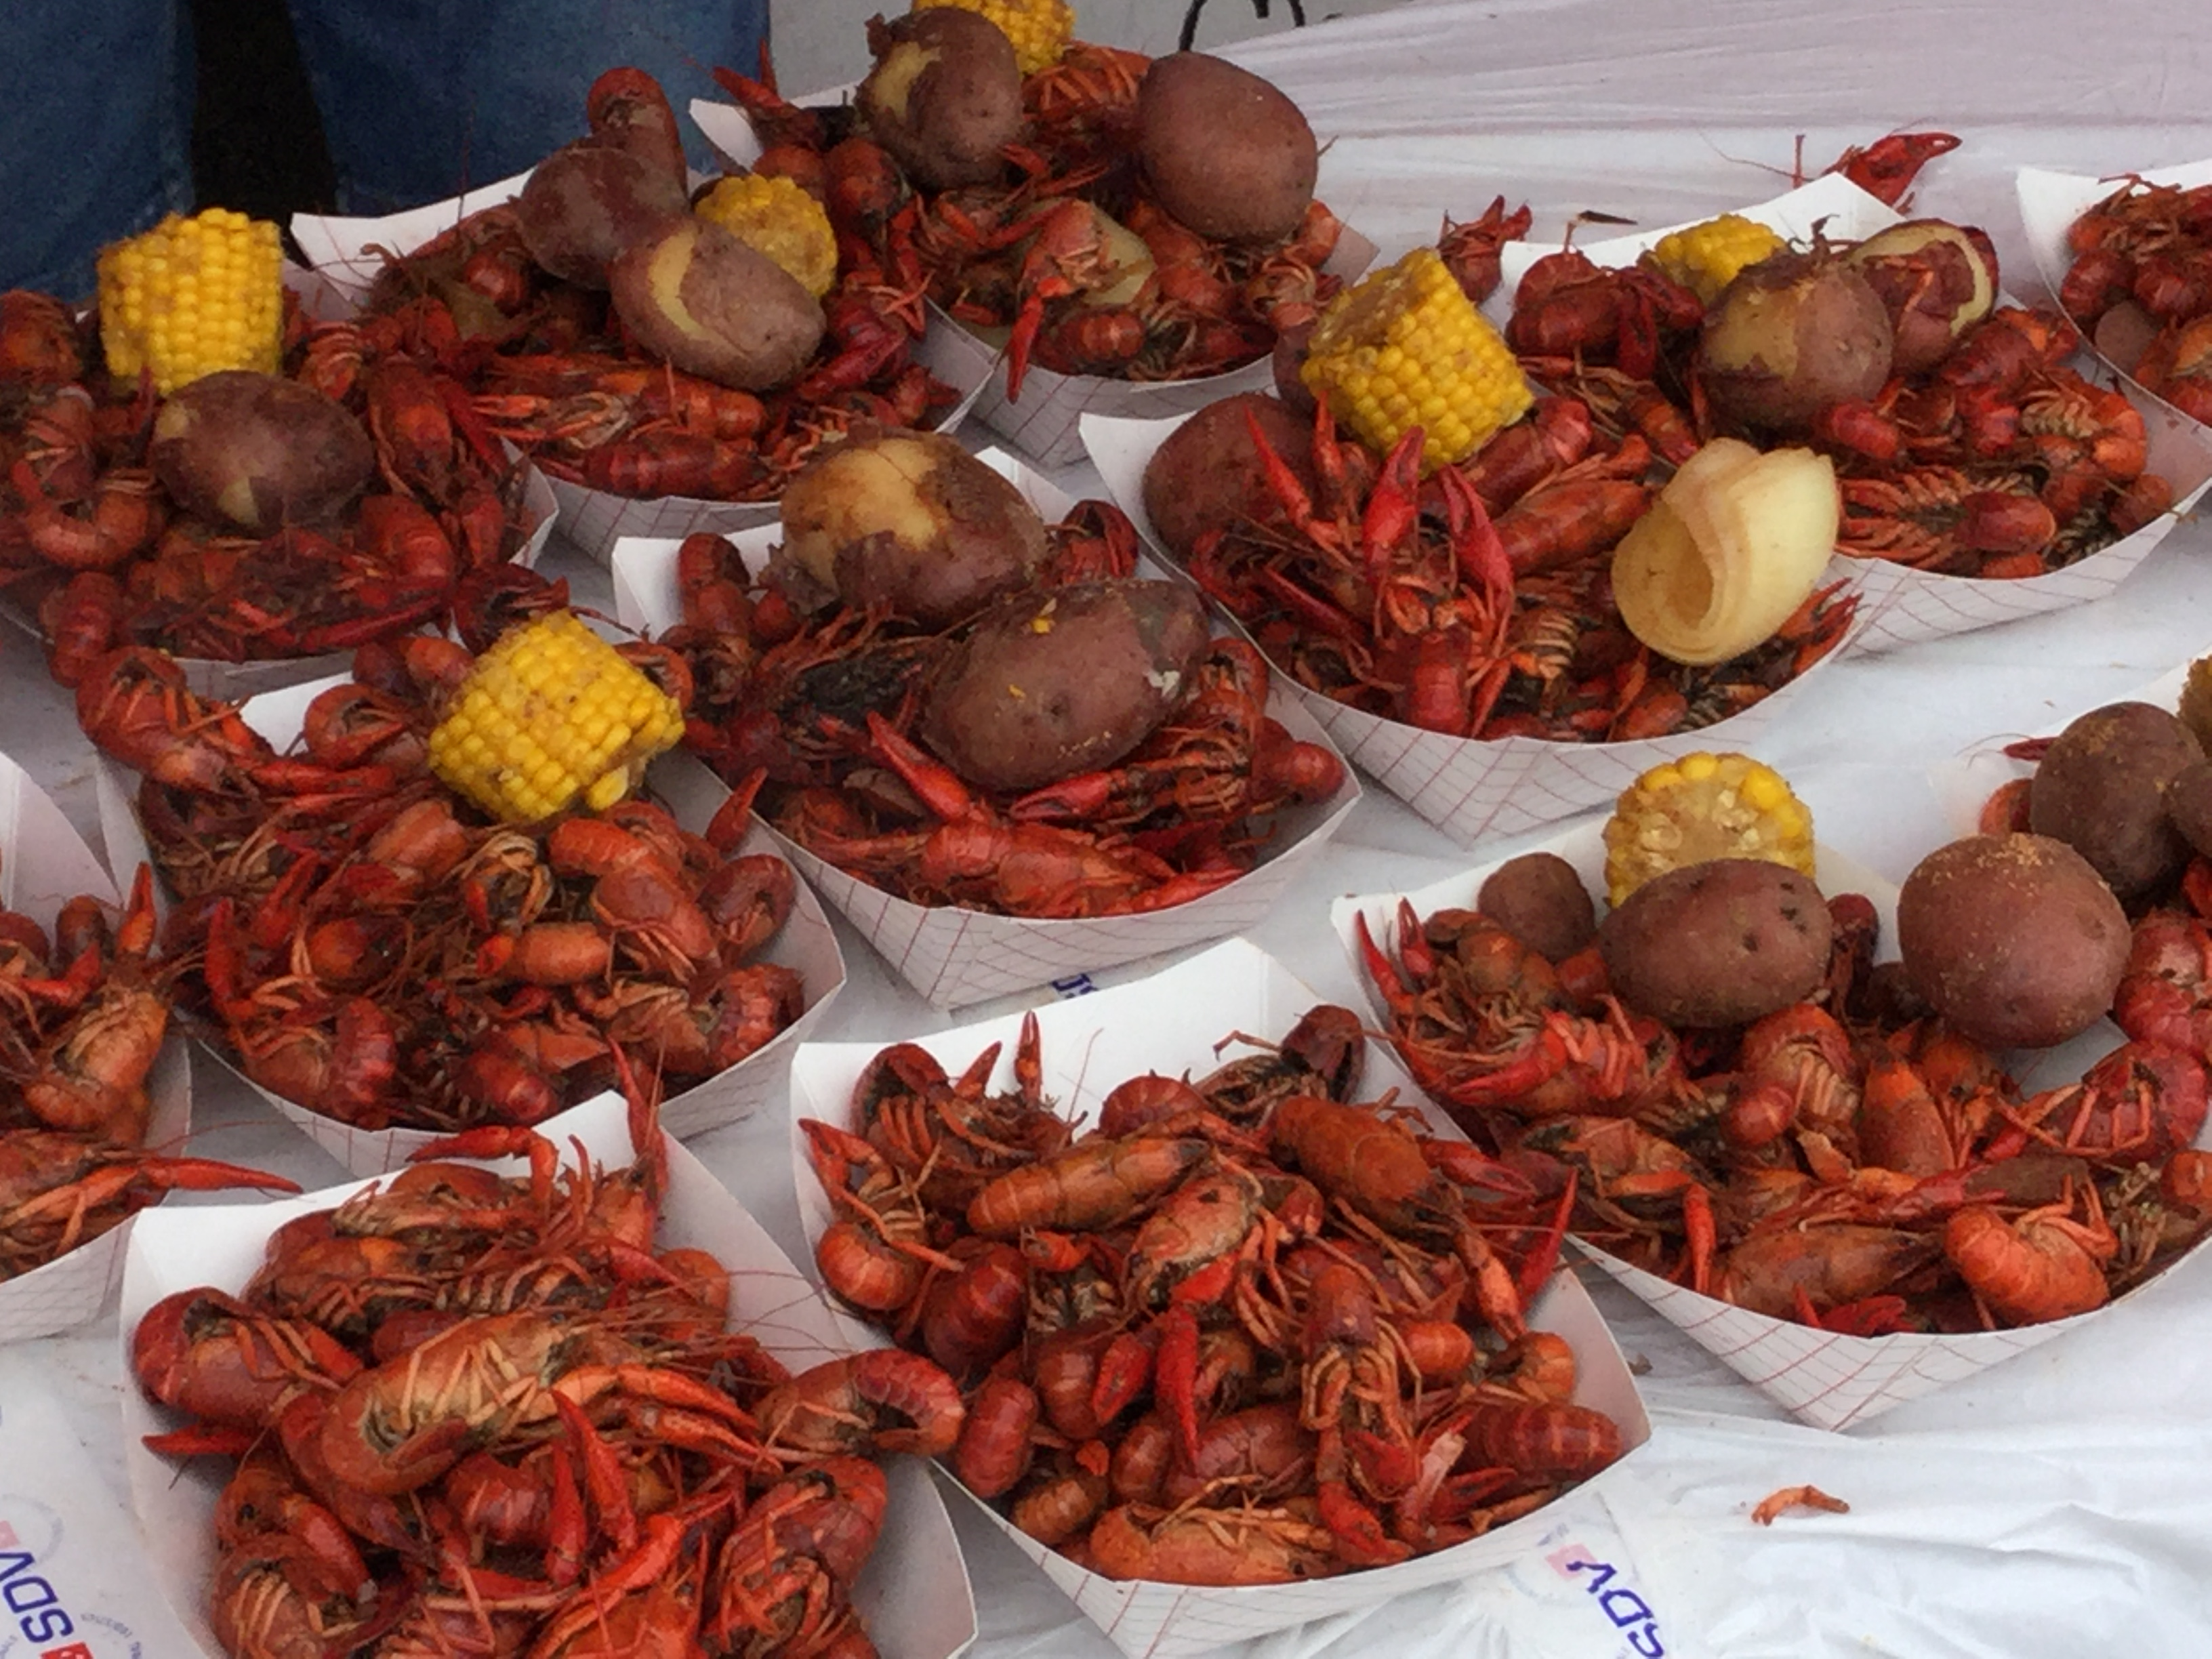 Most boiled crawfish prepared in 8 hours